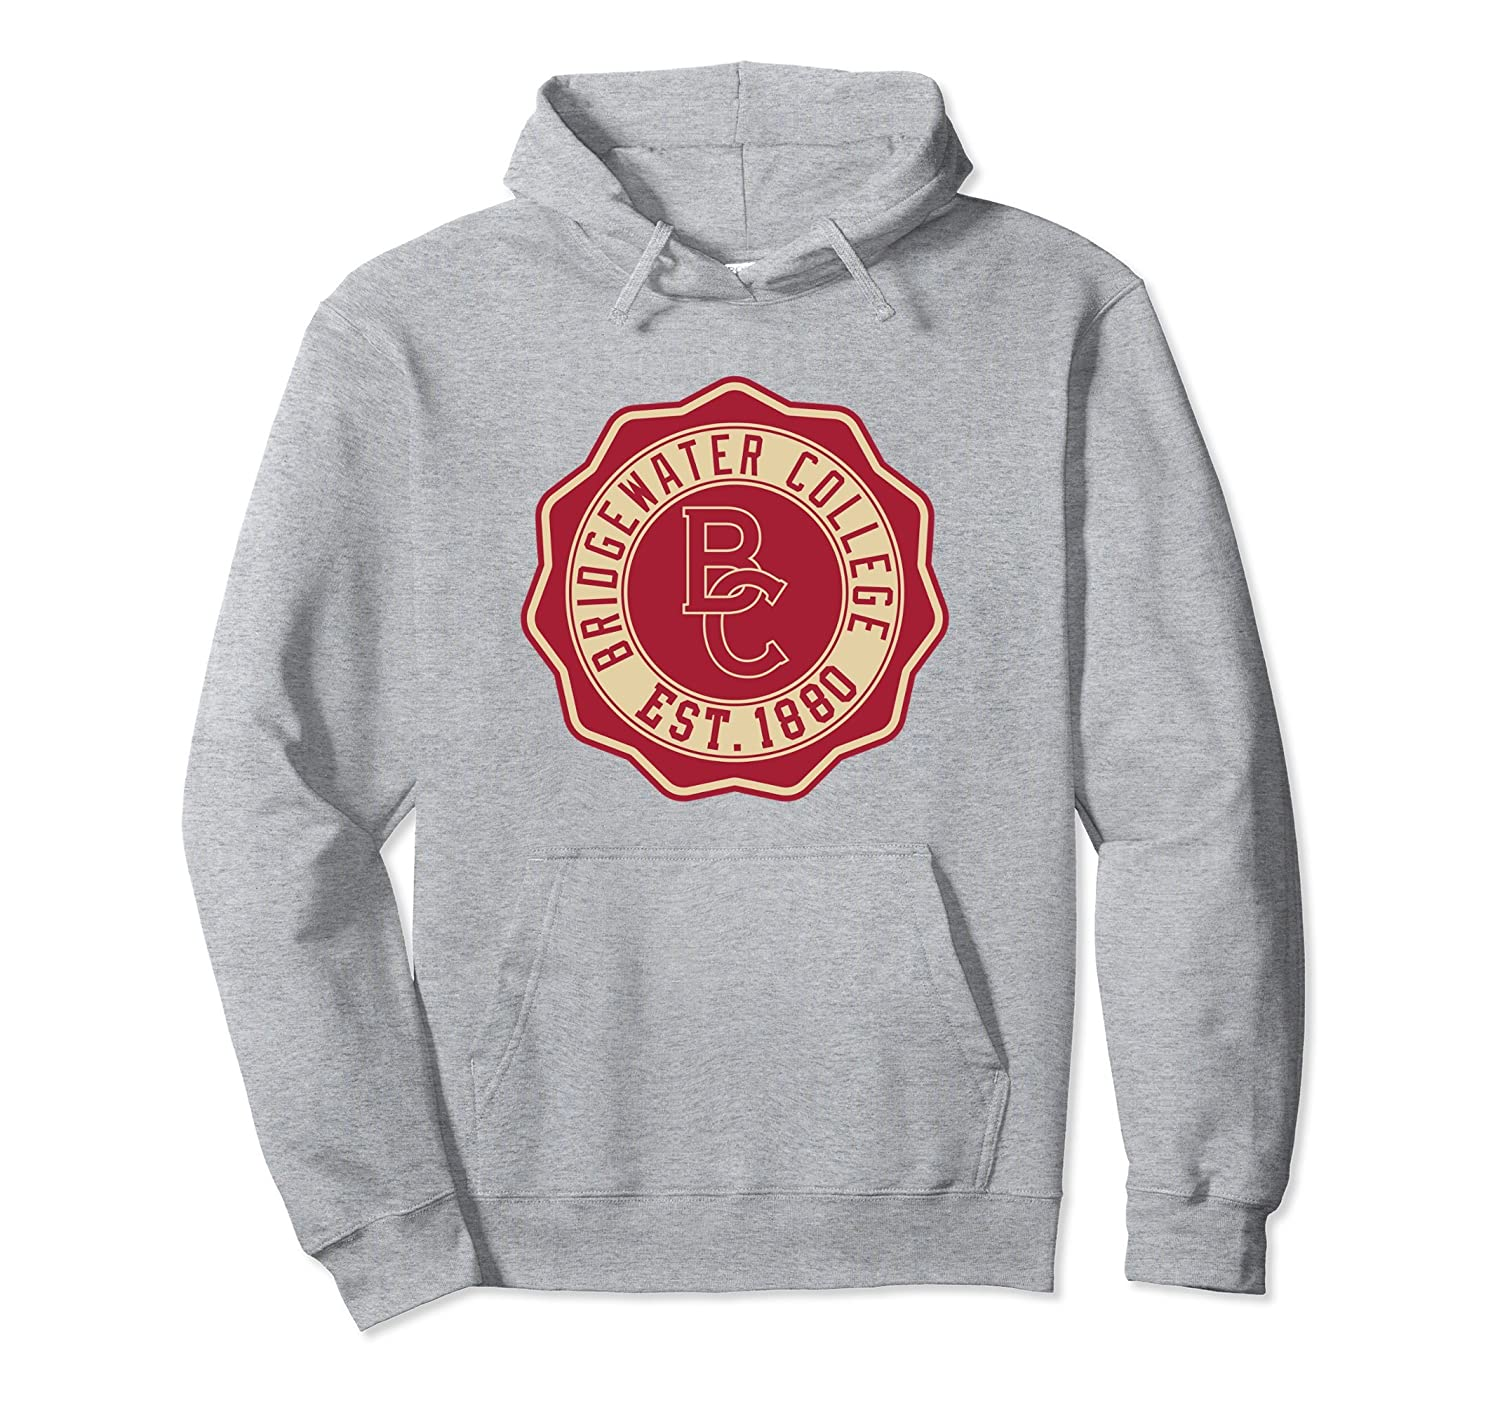 Bridgewater College Eagles Hoodie 74BC1-ah my shirt one gift